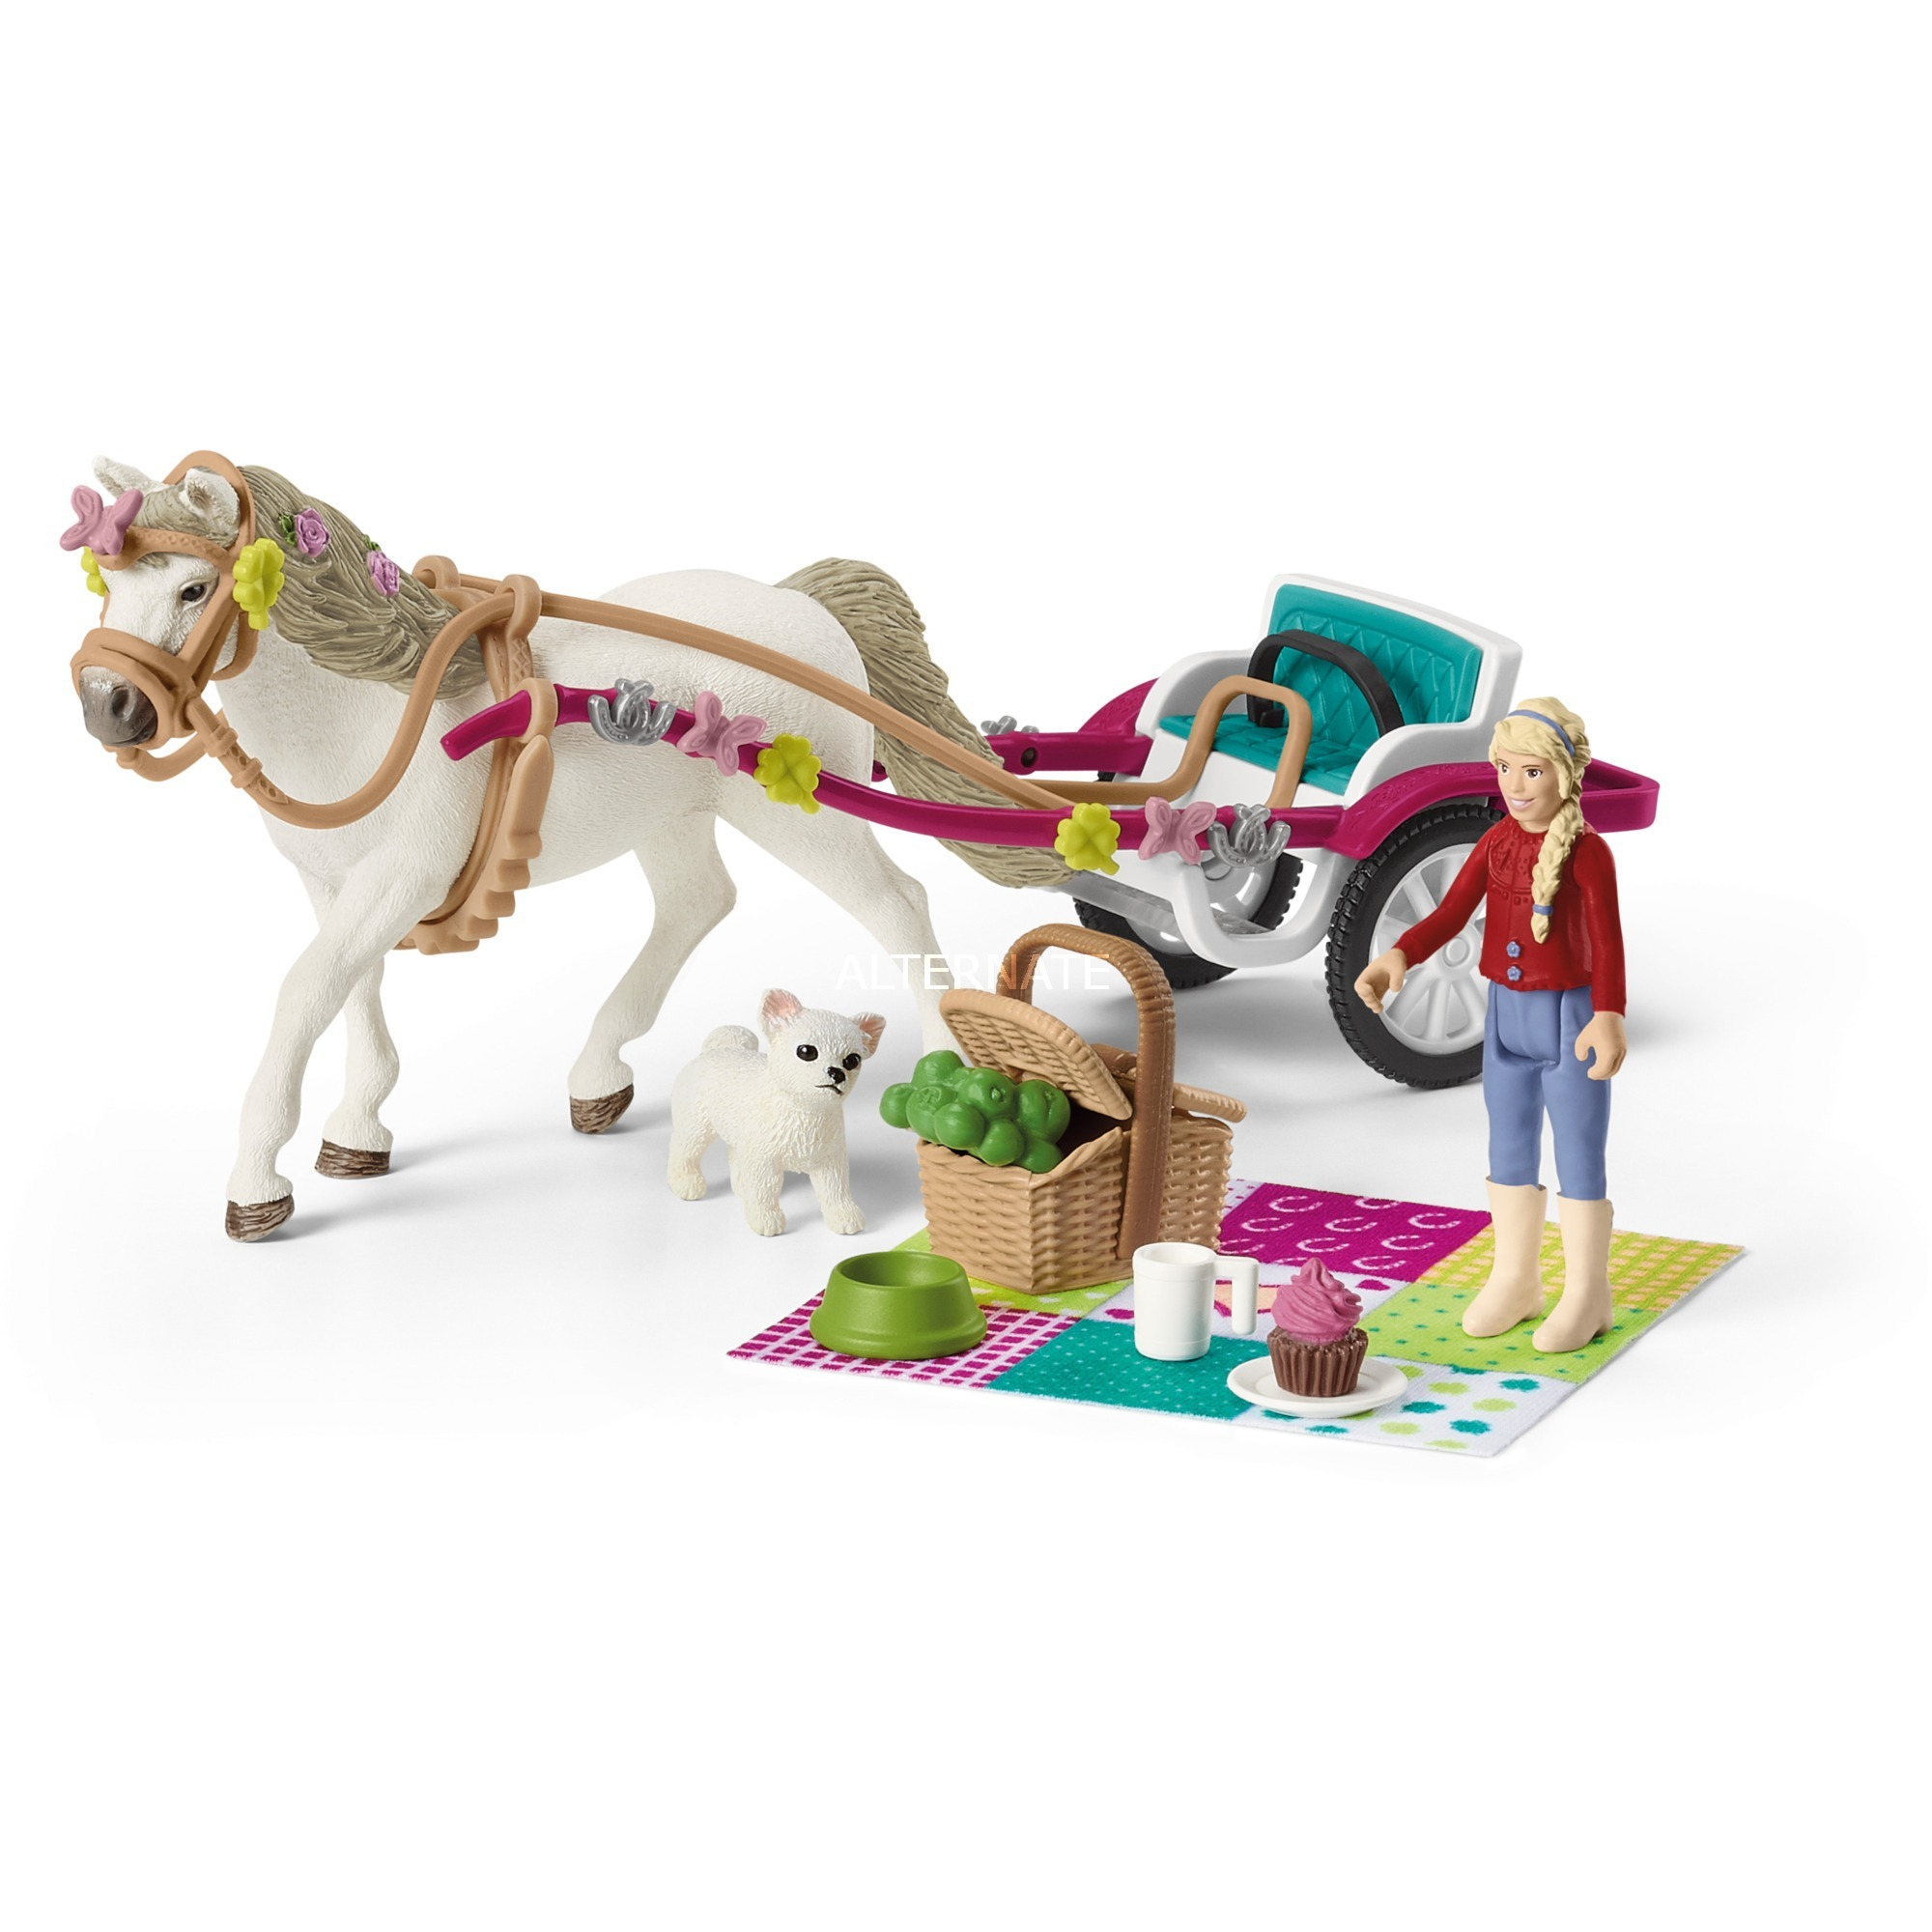 SCHLEICH HORSE CLUB CARROZZA CON CAVALLO 42467